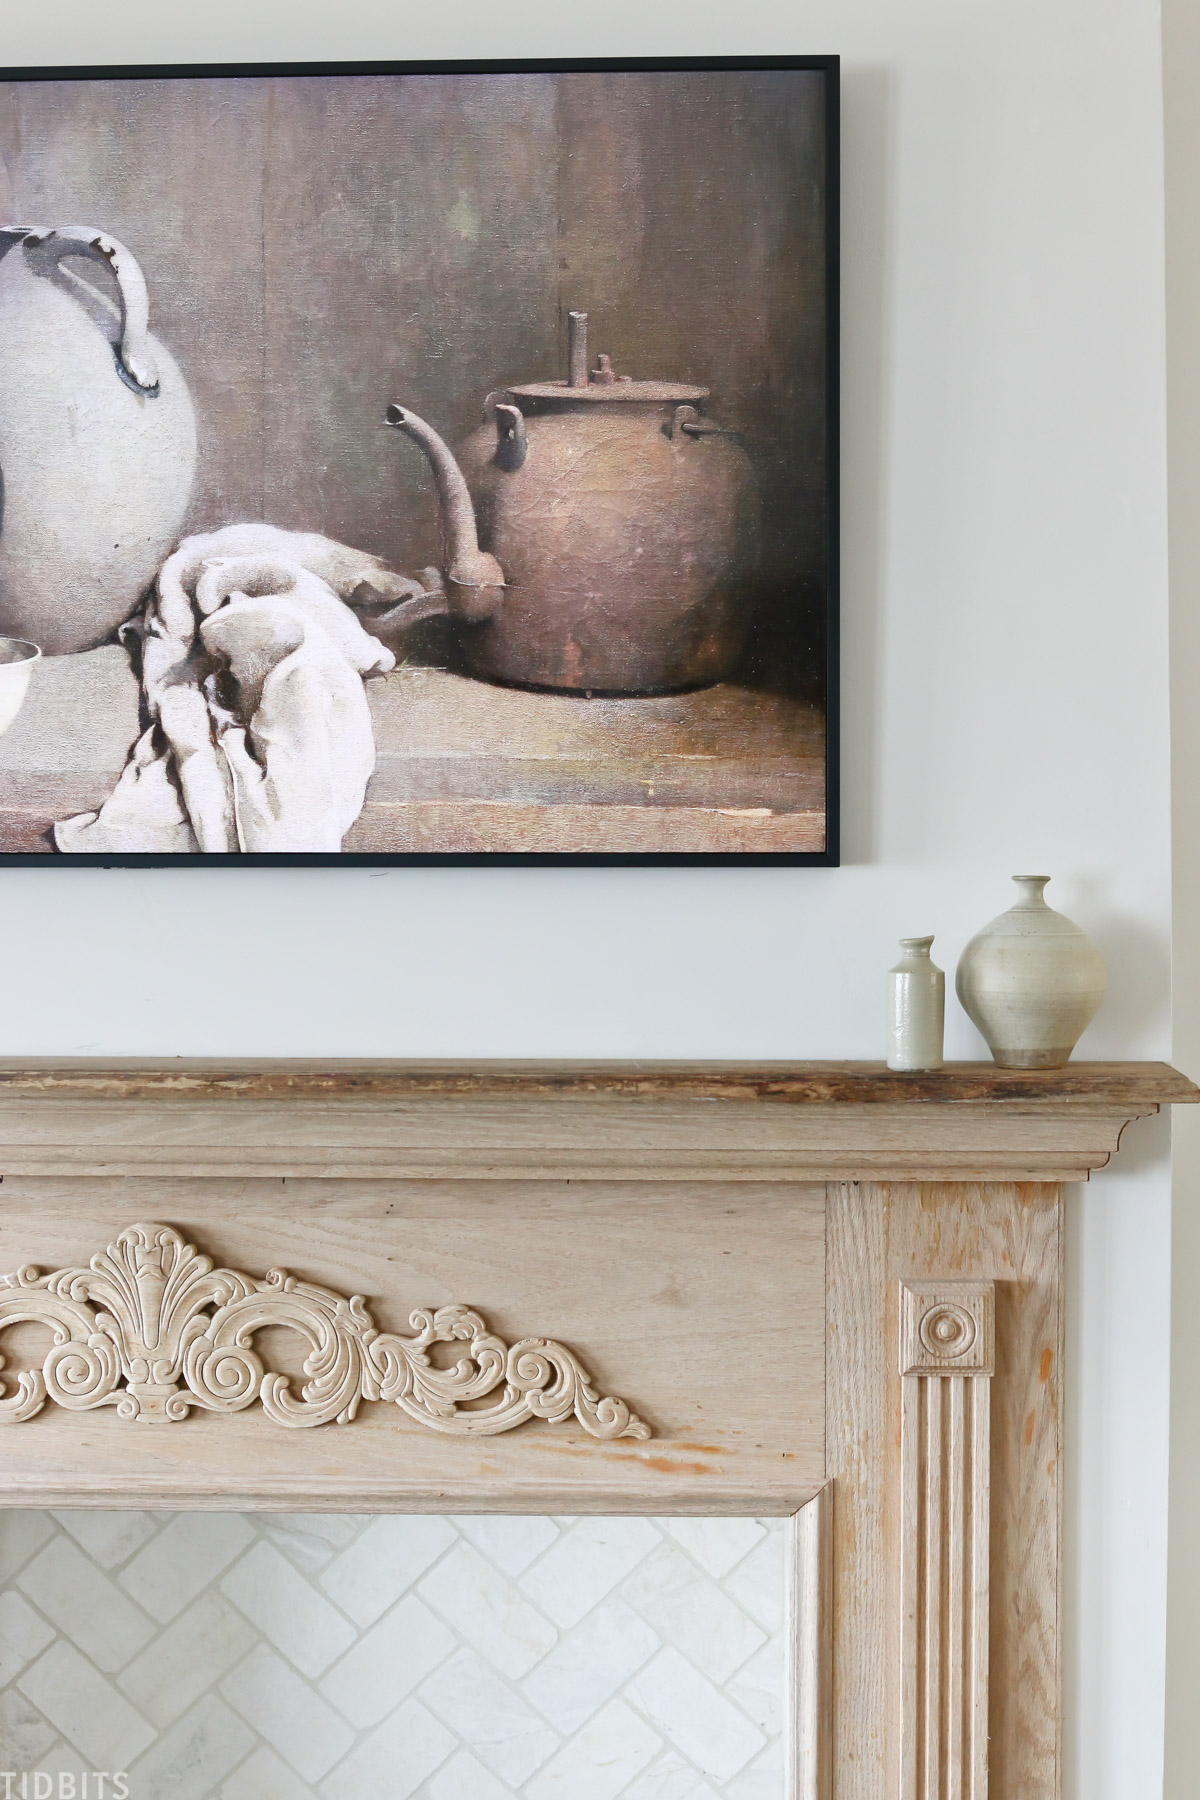 two pieces of pottery placed on faux mantel with antique painting on wall above mantel